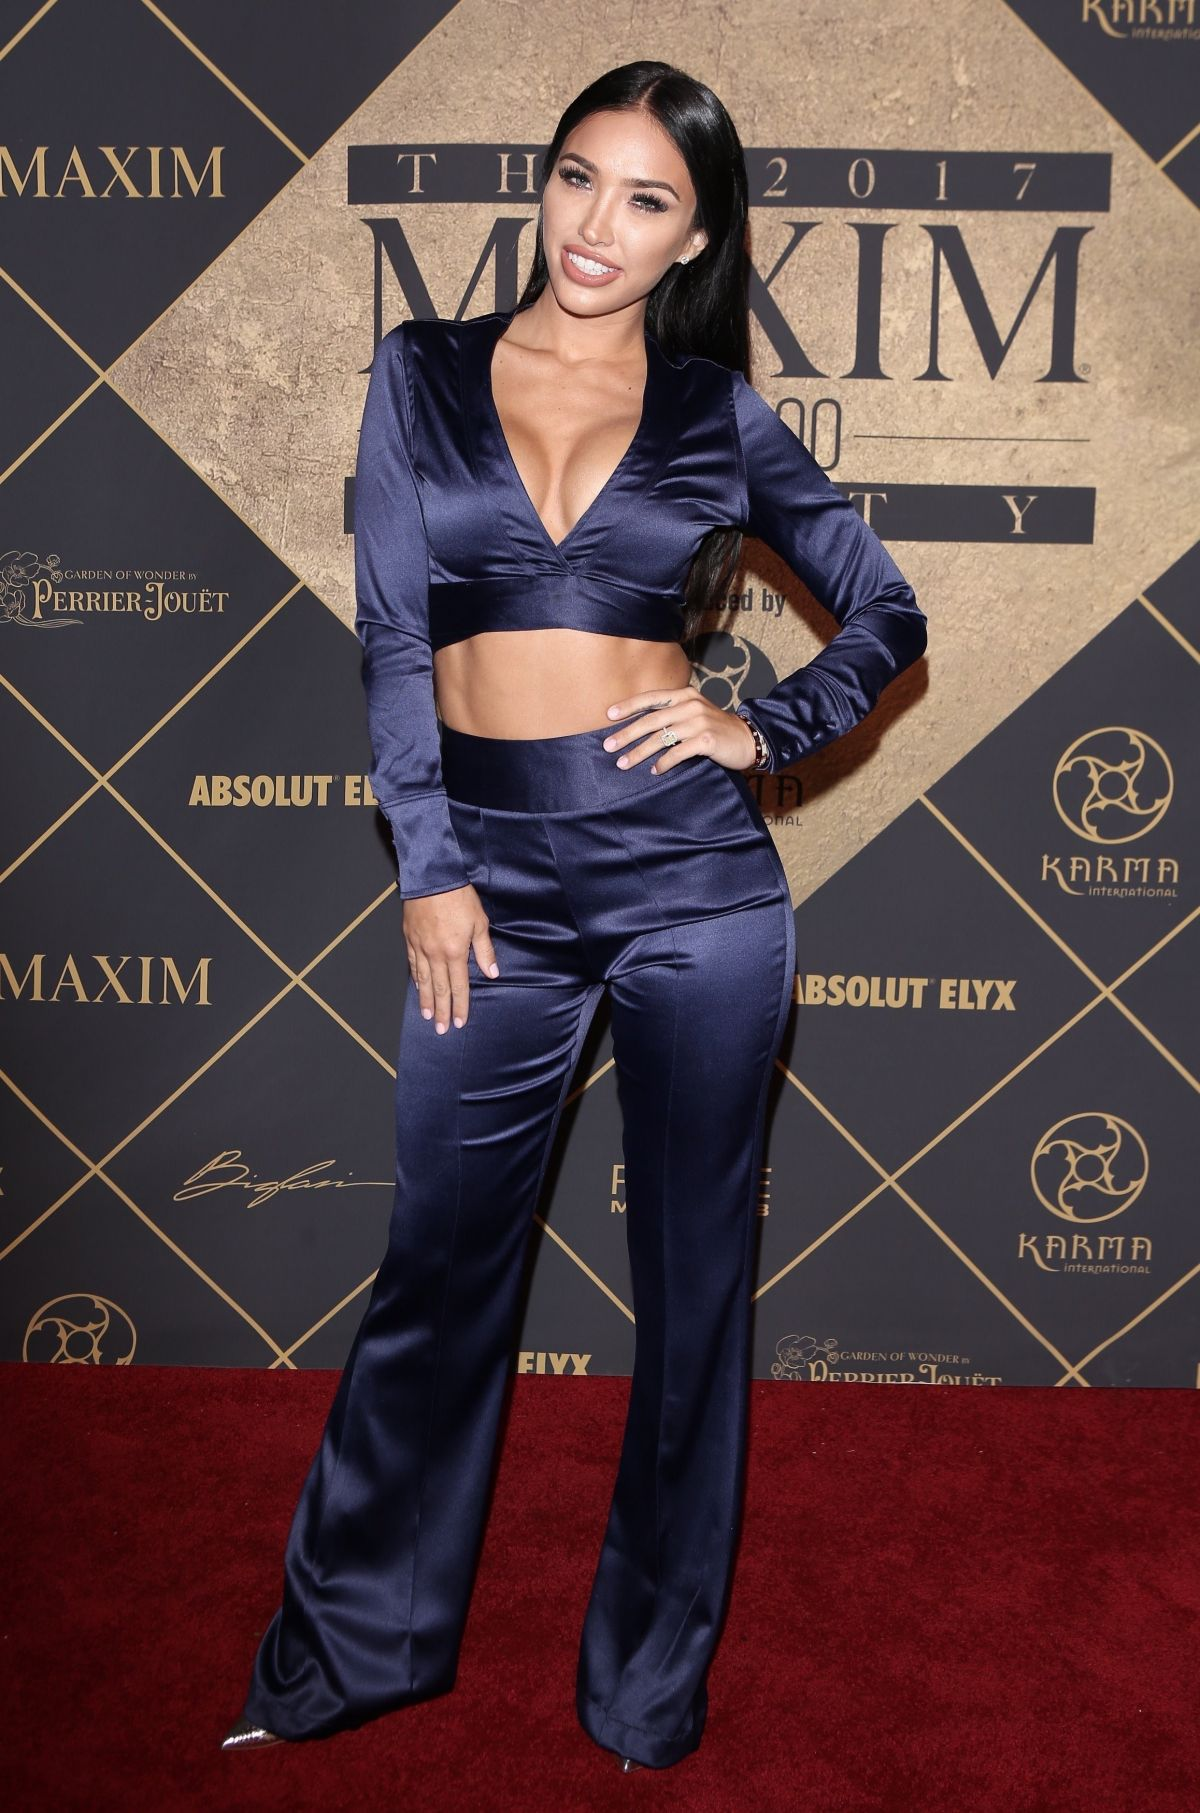 Bre Tiesi At 2017 Maxim Hot 100 Party In Los Angeles 06242017  Hawtcelebs-3782